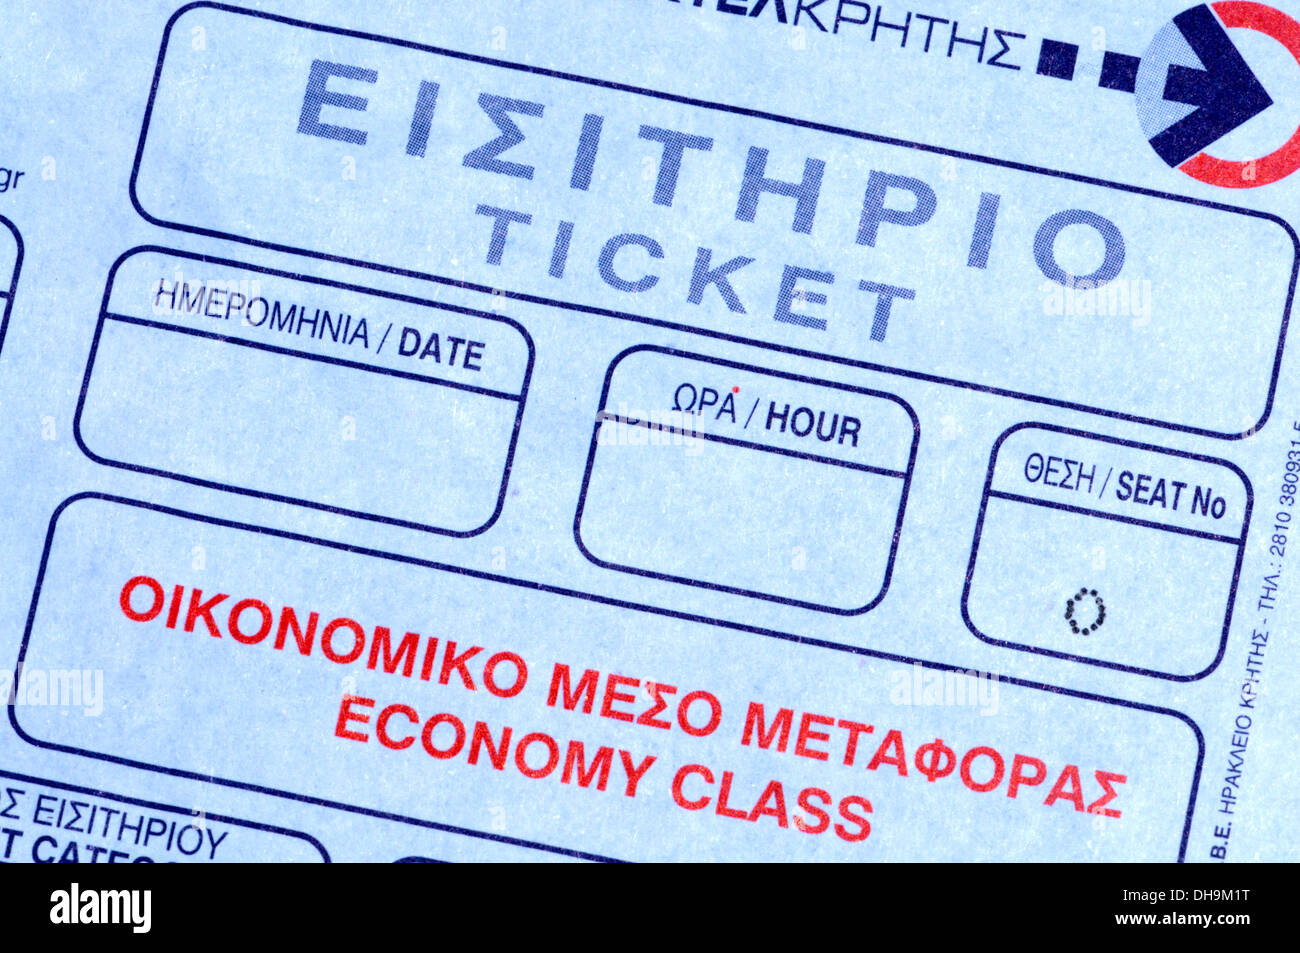 Bus ticket from Crete, Greece. Information in Greek and English - Stock Image